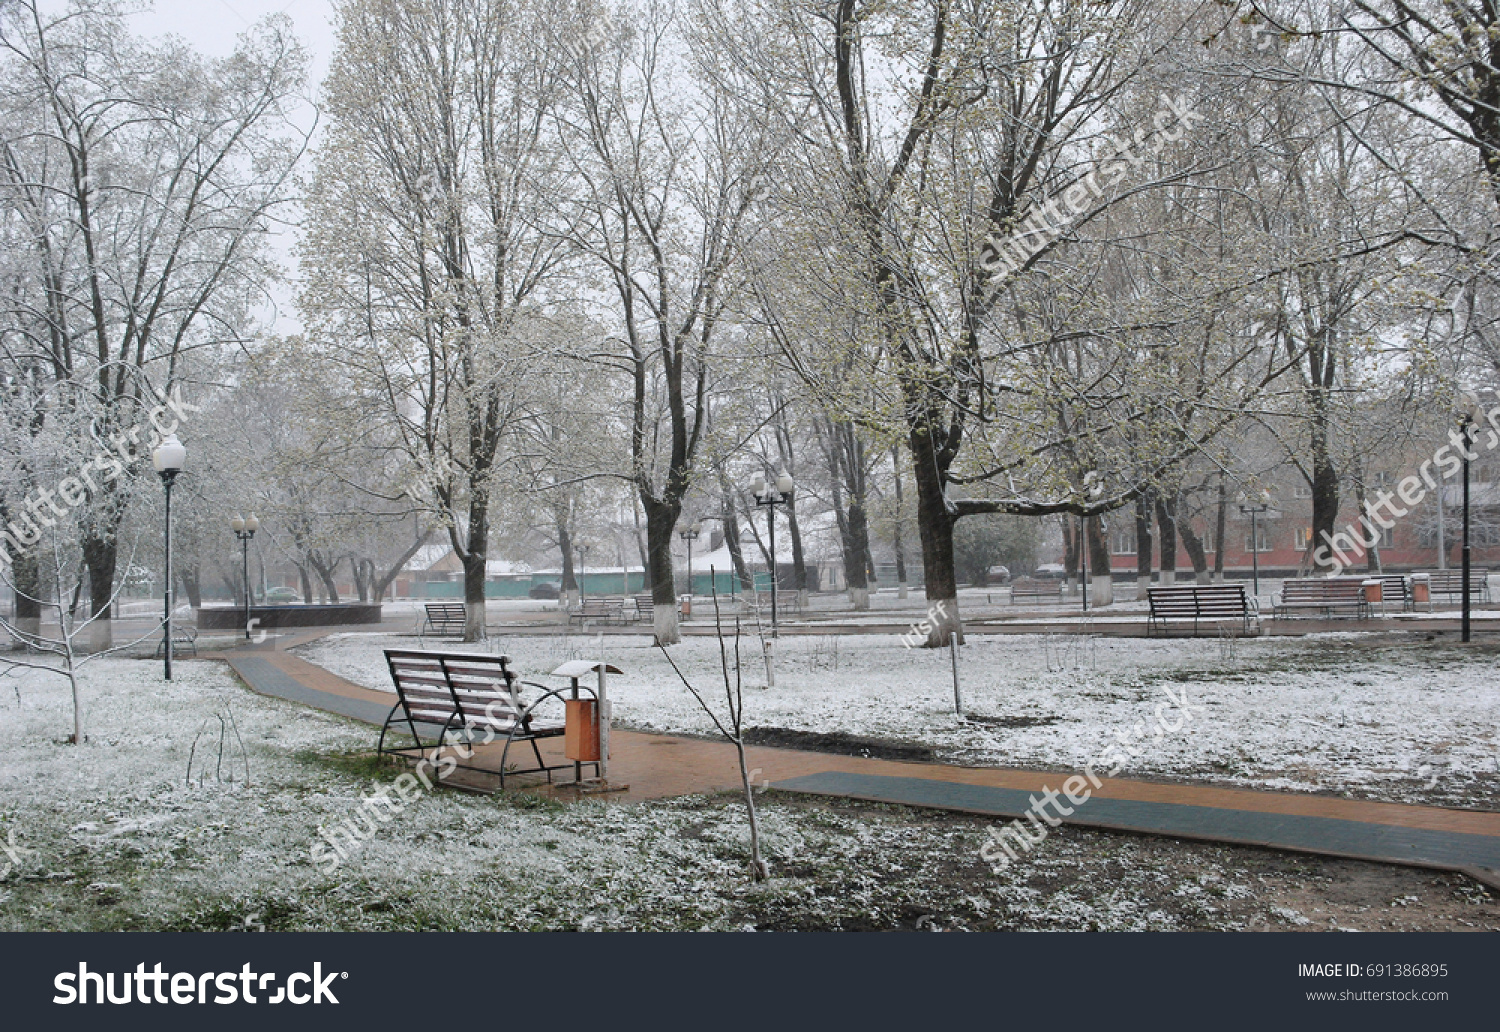 stock-photo-spring-snowfall-the-snow-in-